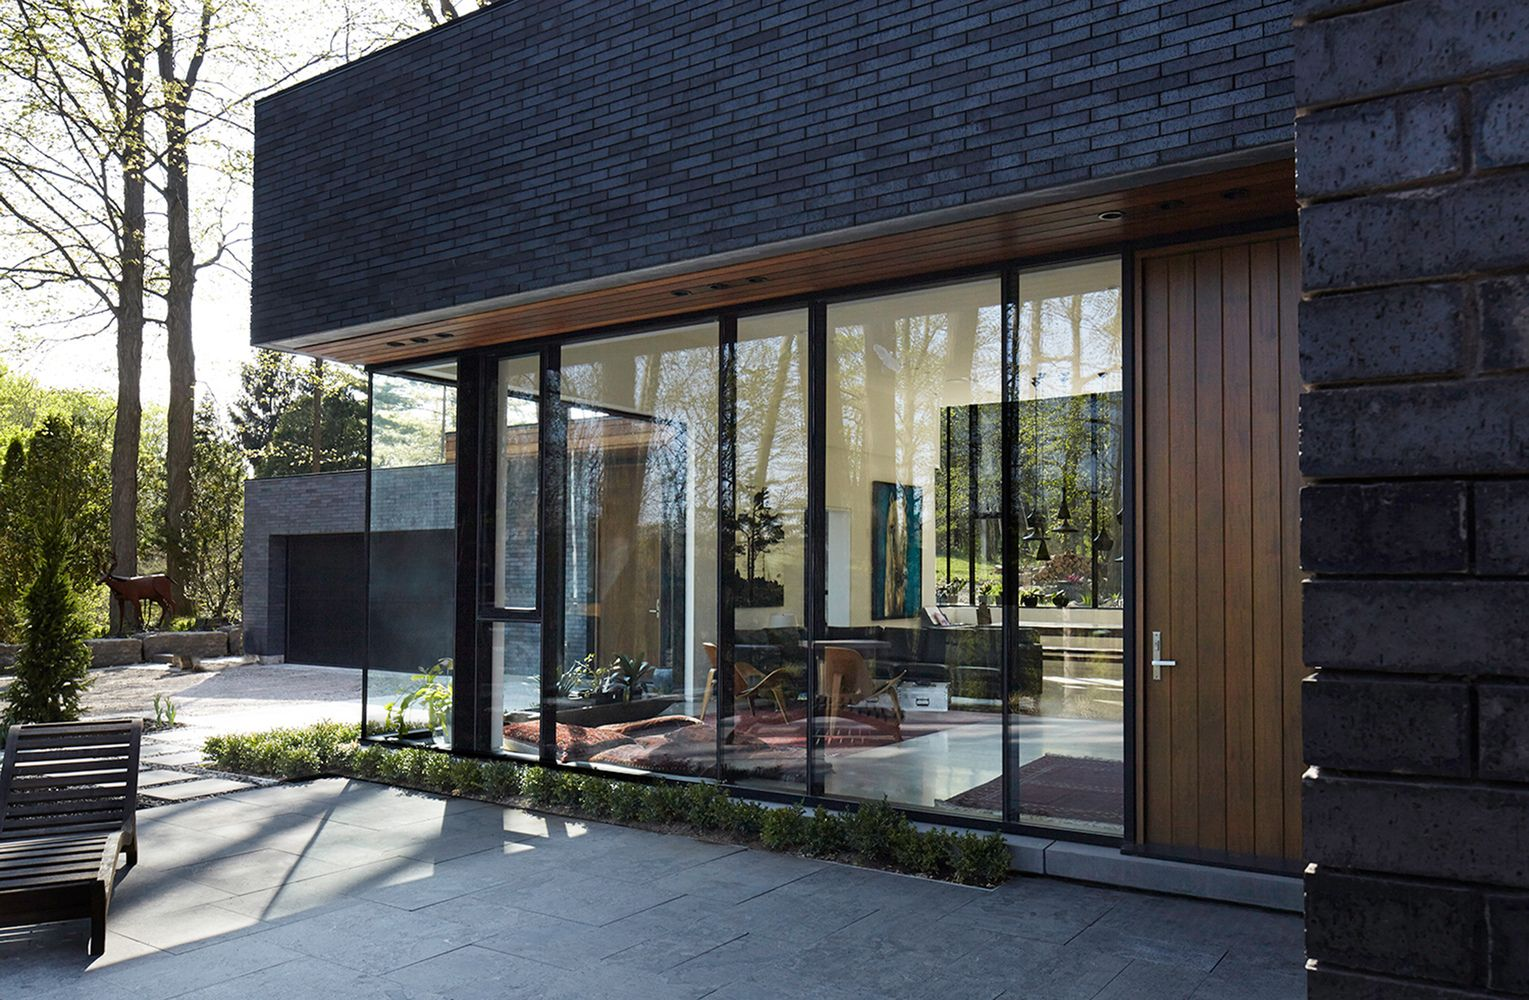 Galeria De Residencia Fallsview Setless Architecture 4 With